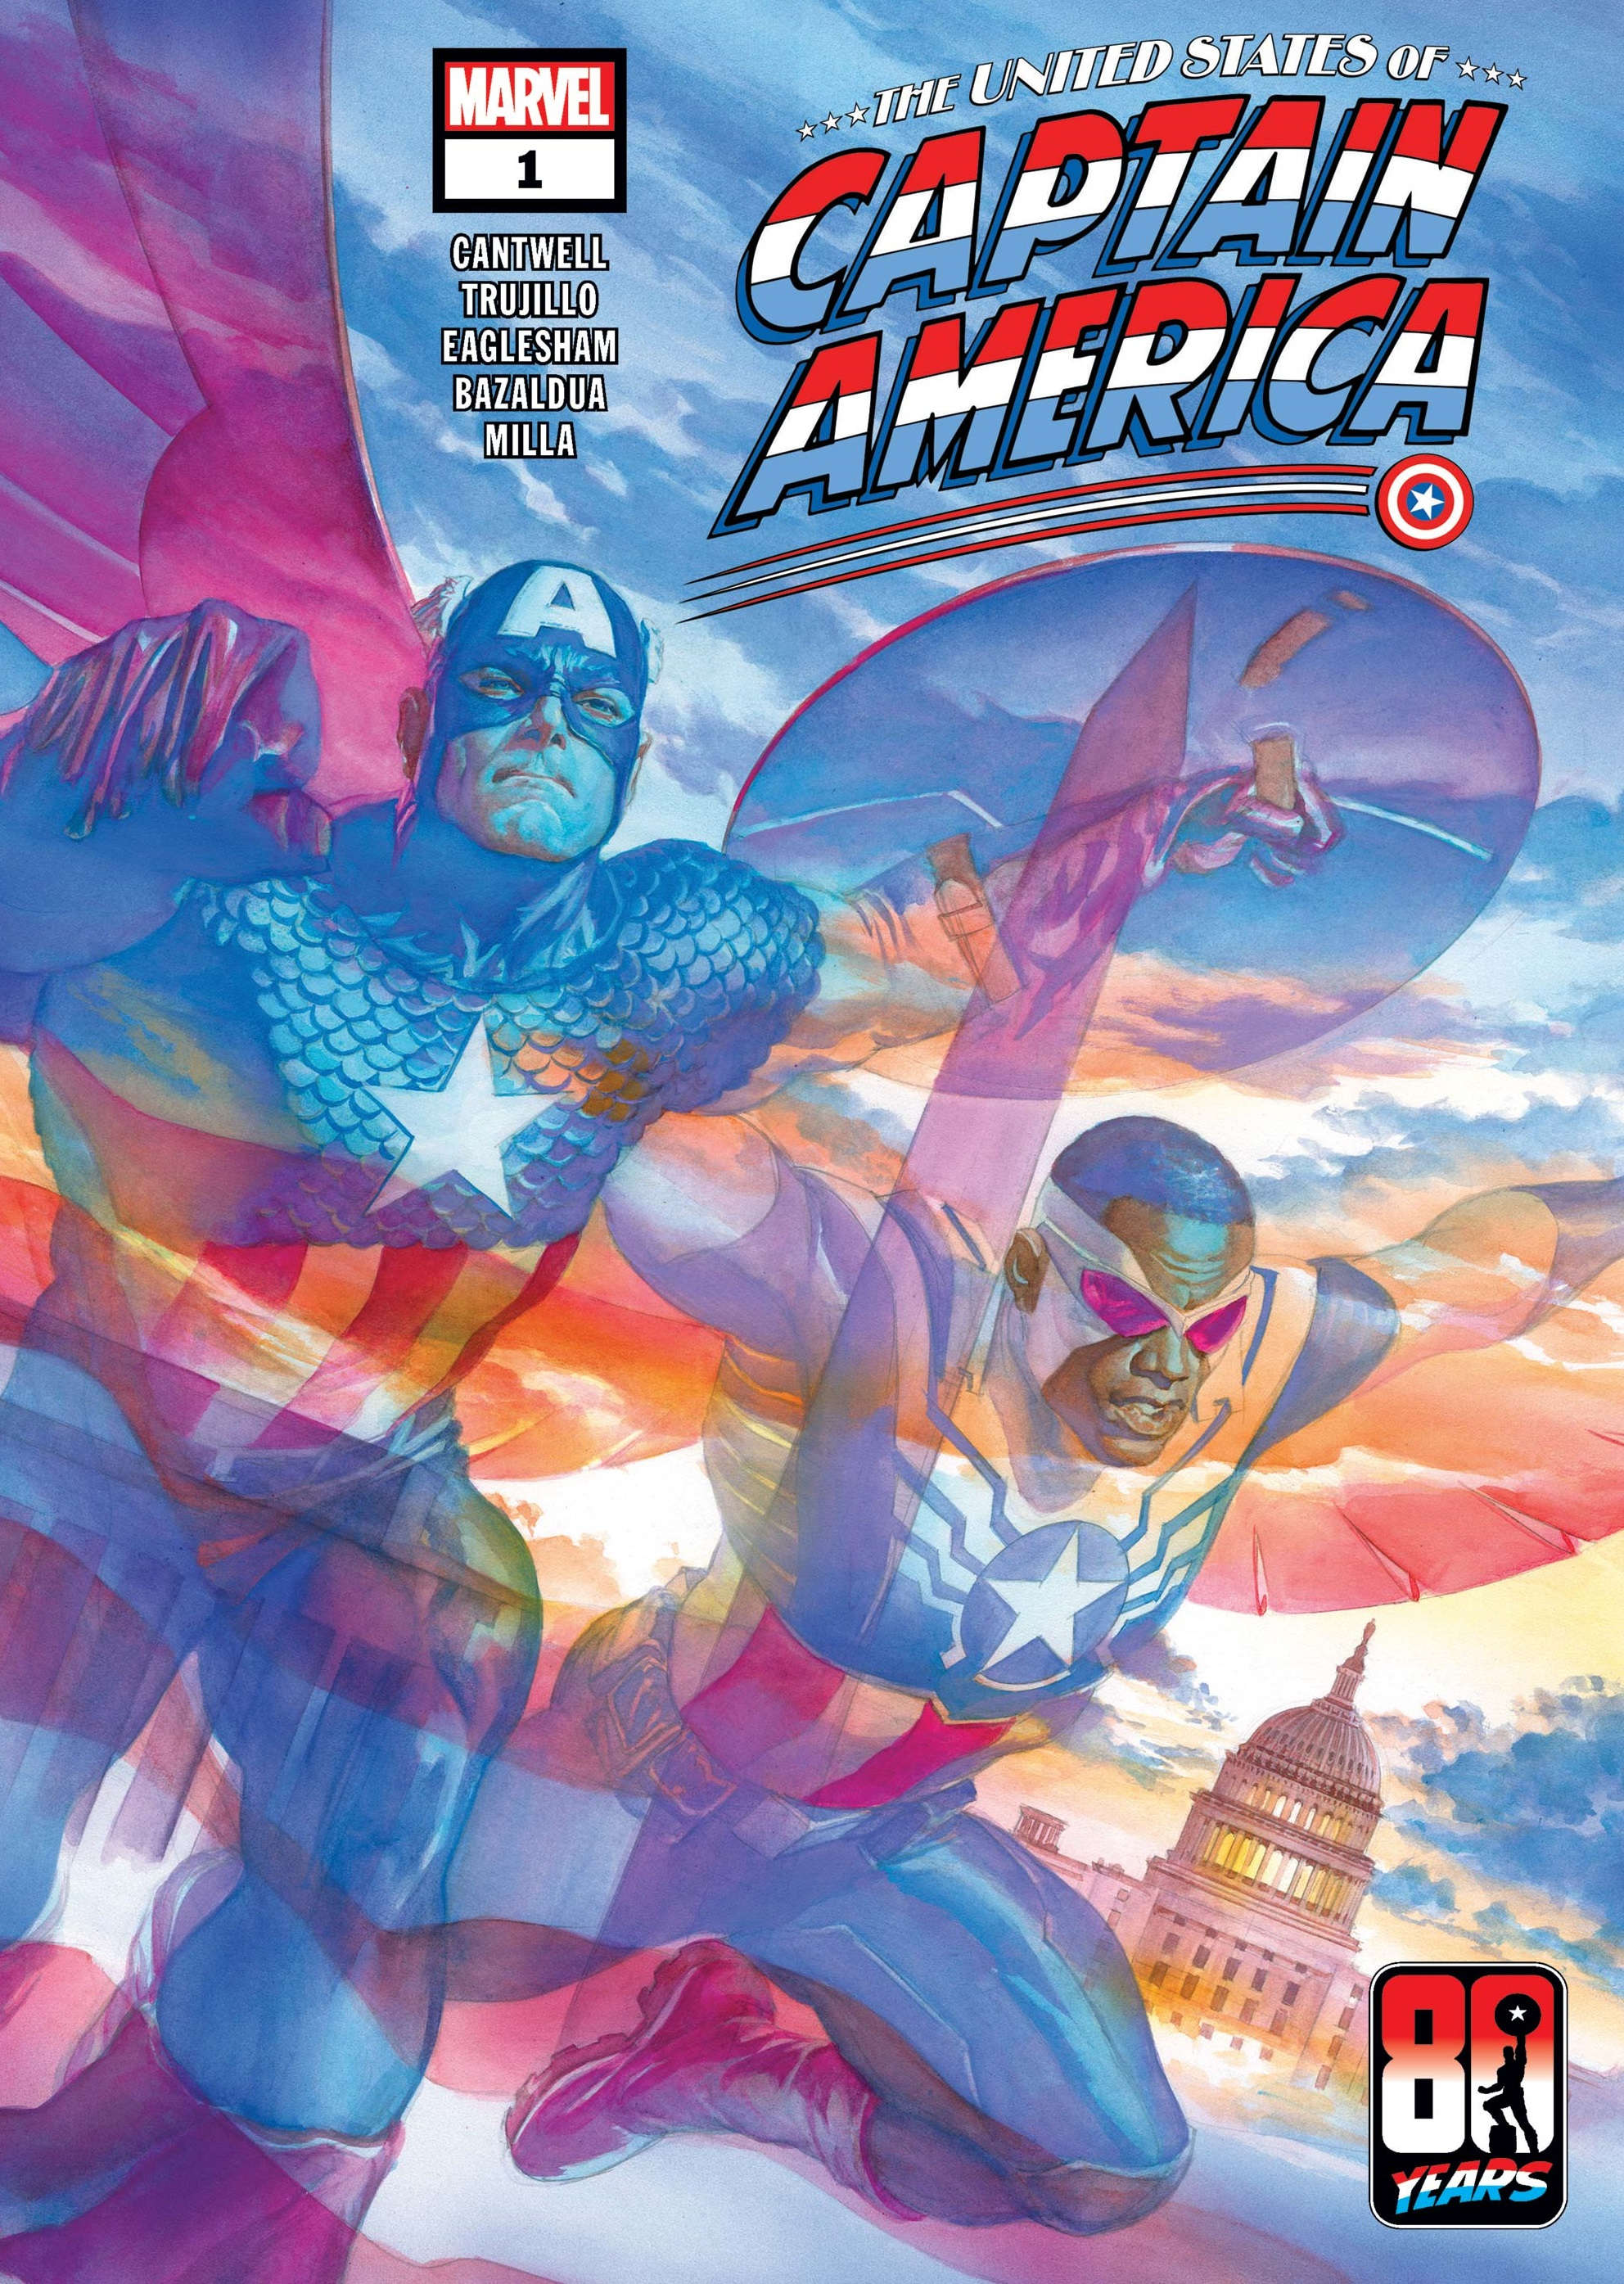 The United States of Captain America (2021) #1